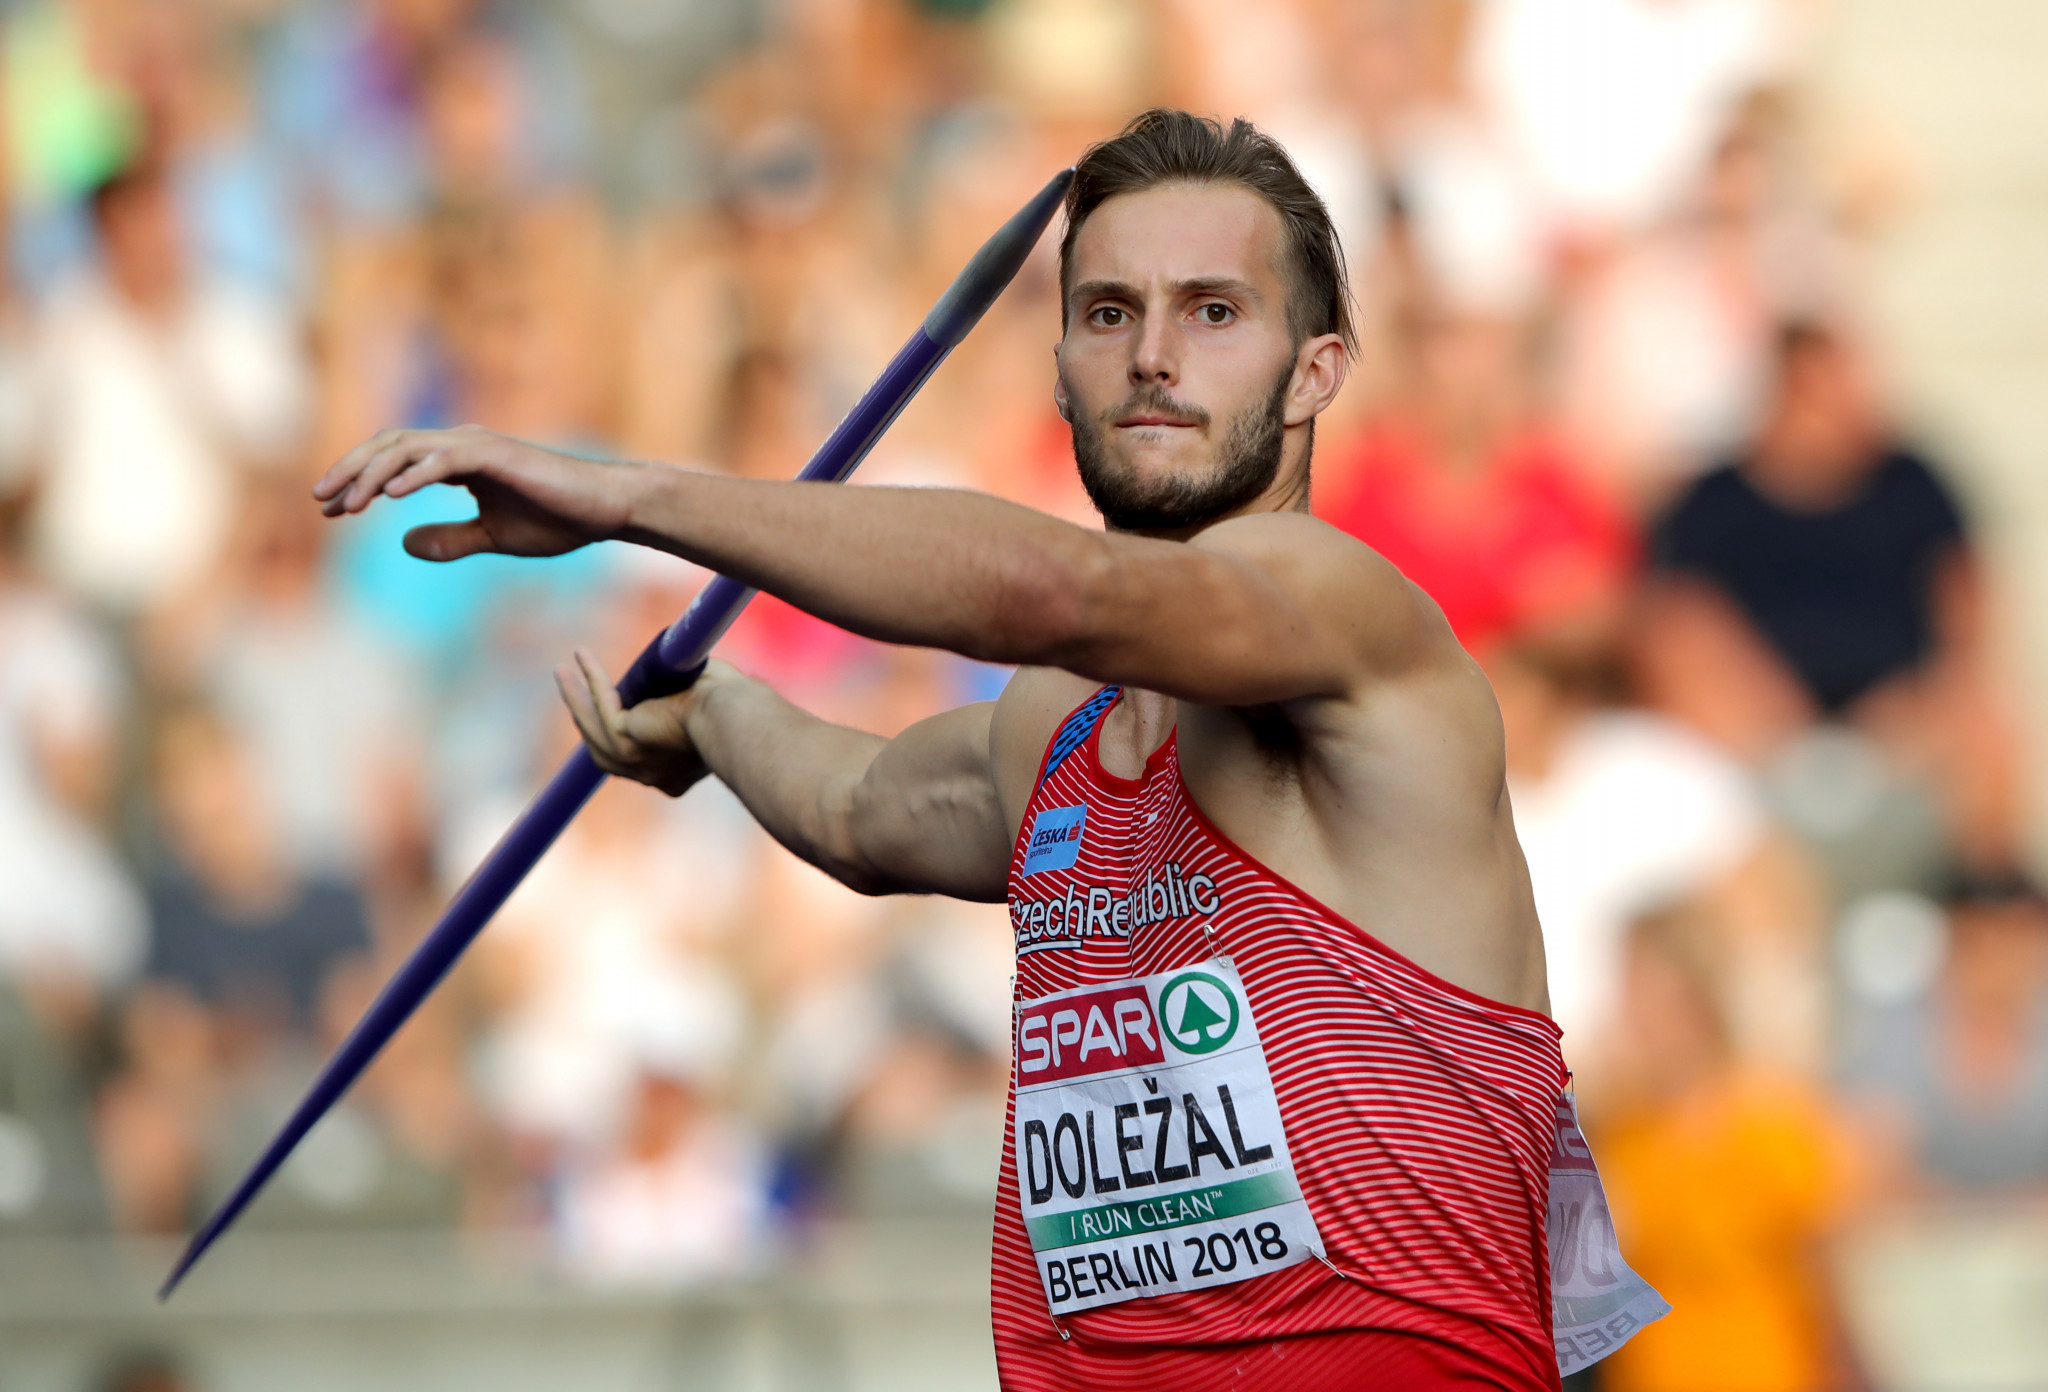 Czech athlete Jan Doležal won the opening leg of this season's IAAF Combined Events Challenge in Italy today ©Getty Images